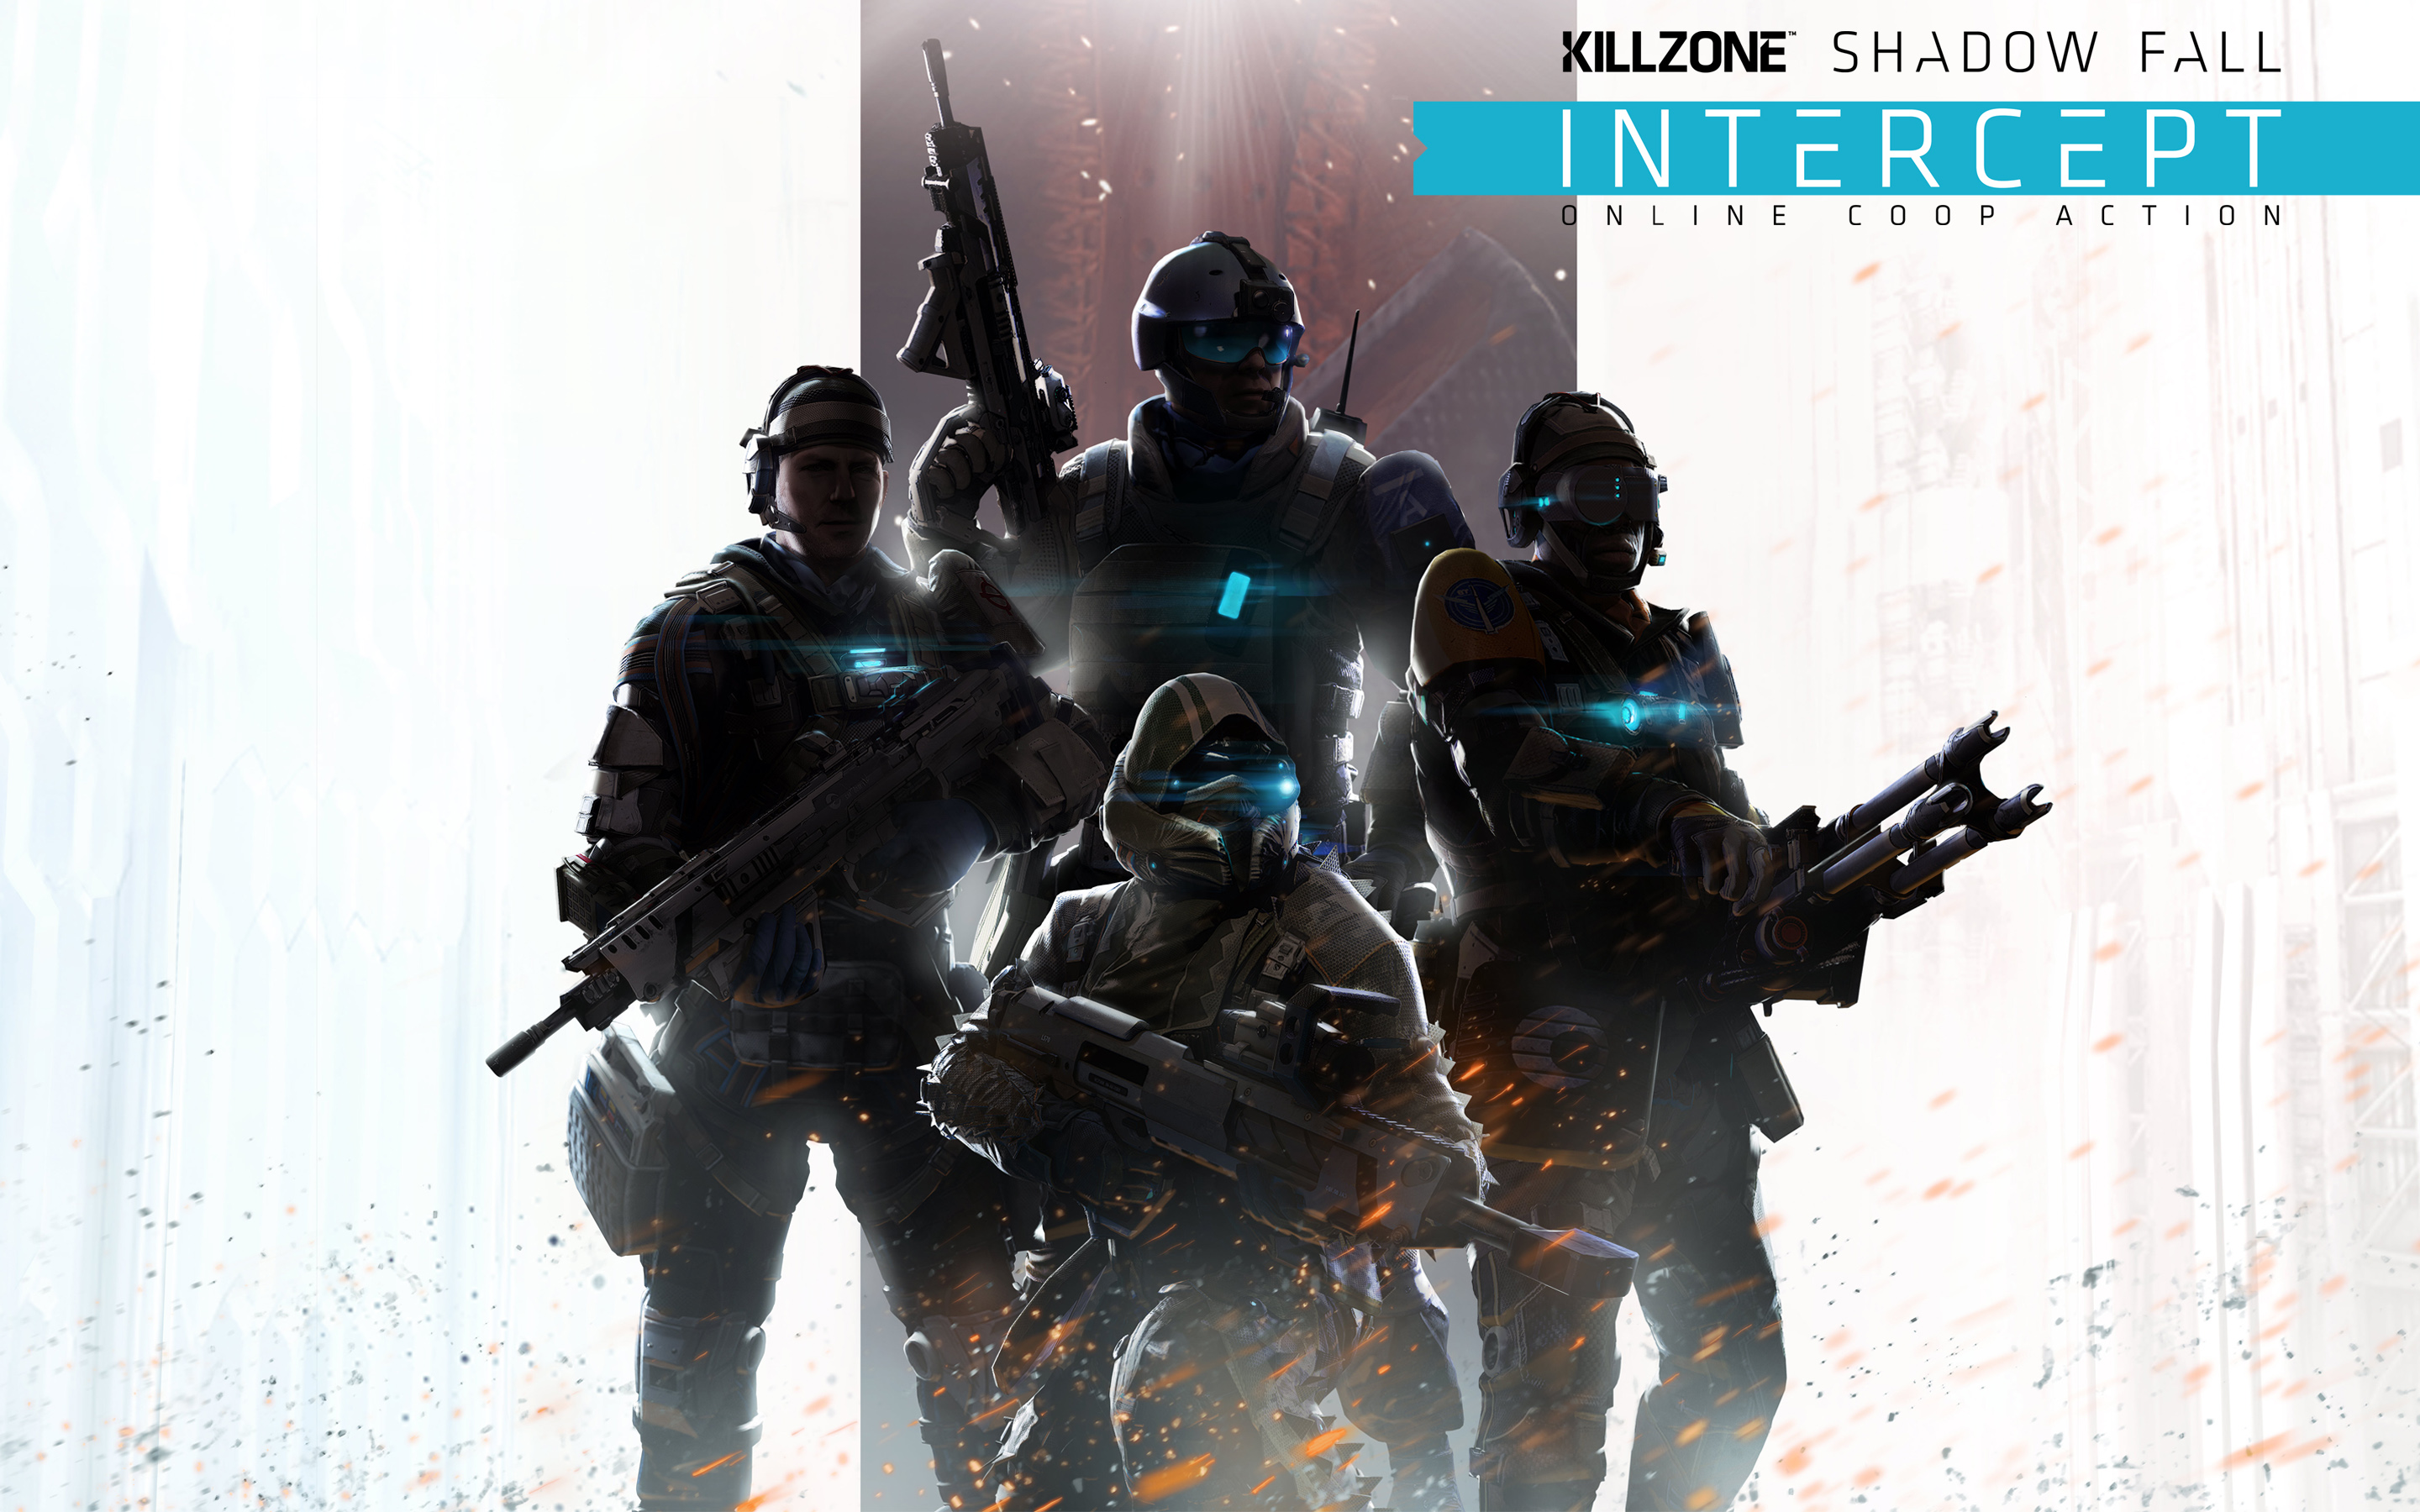 Killzone Shadow Fall Intercept Game 626.27 Kb